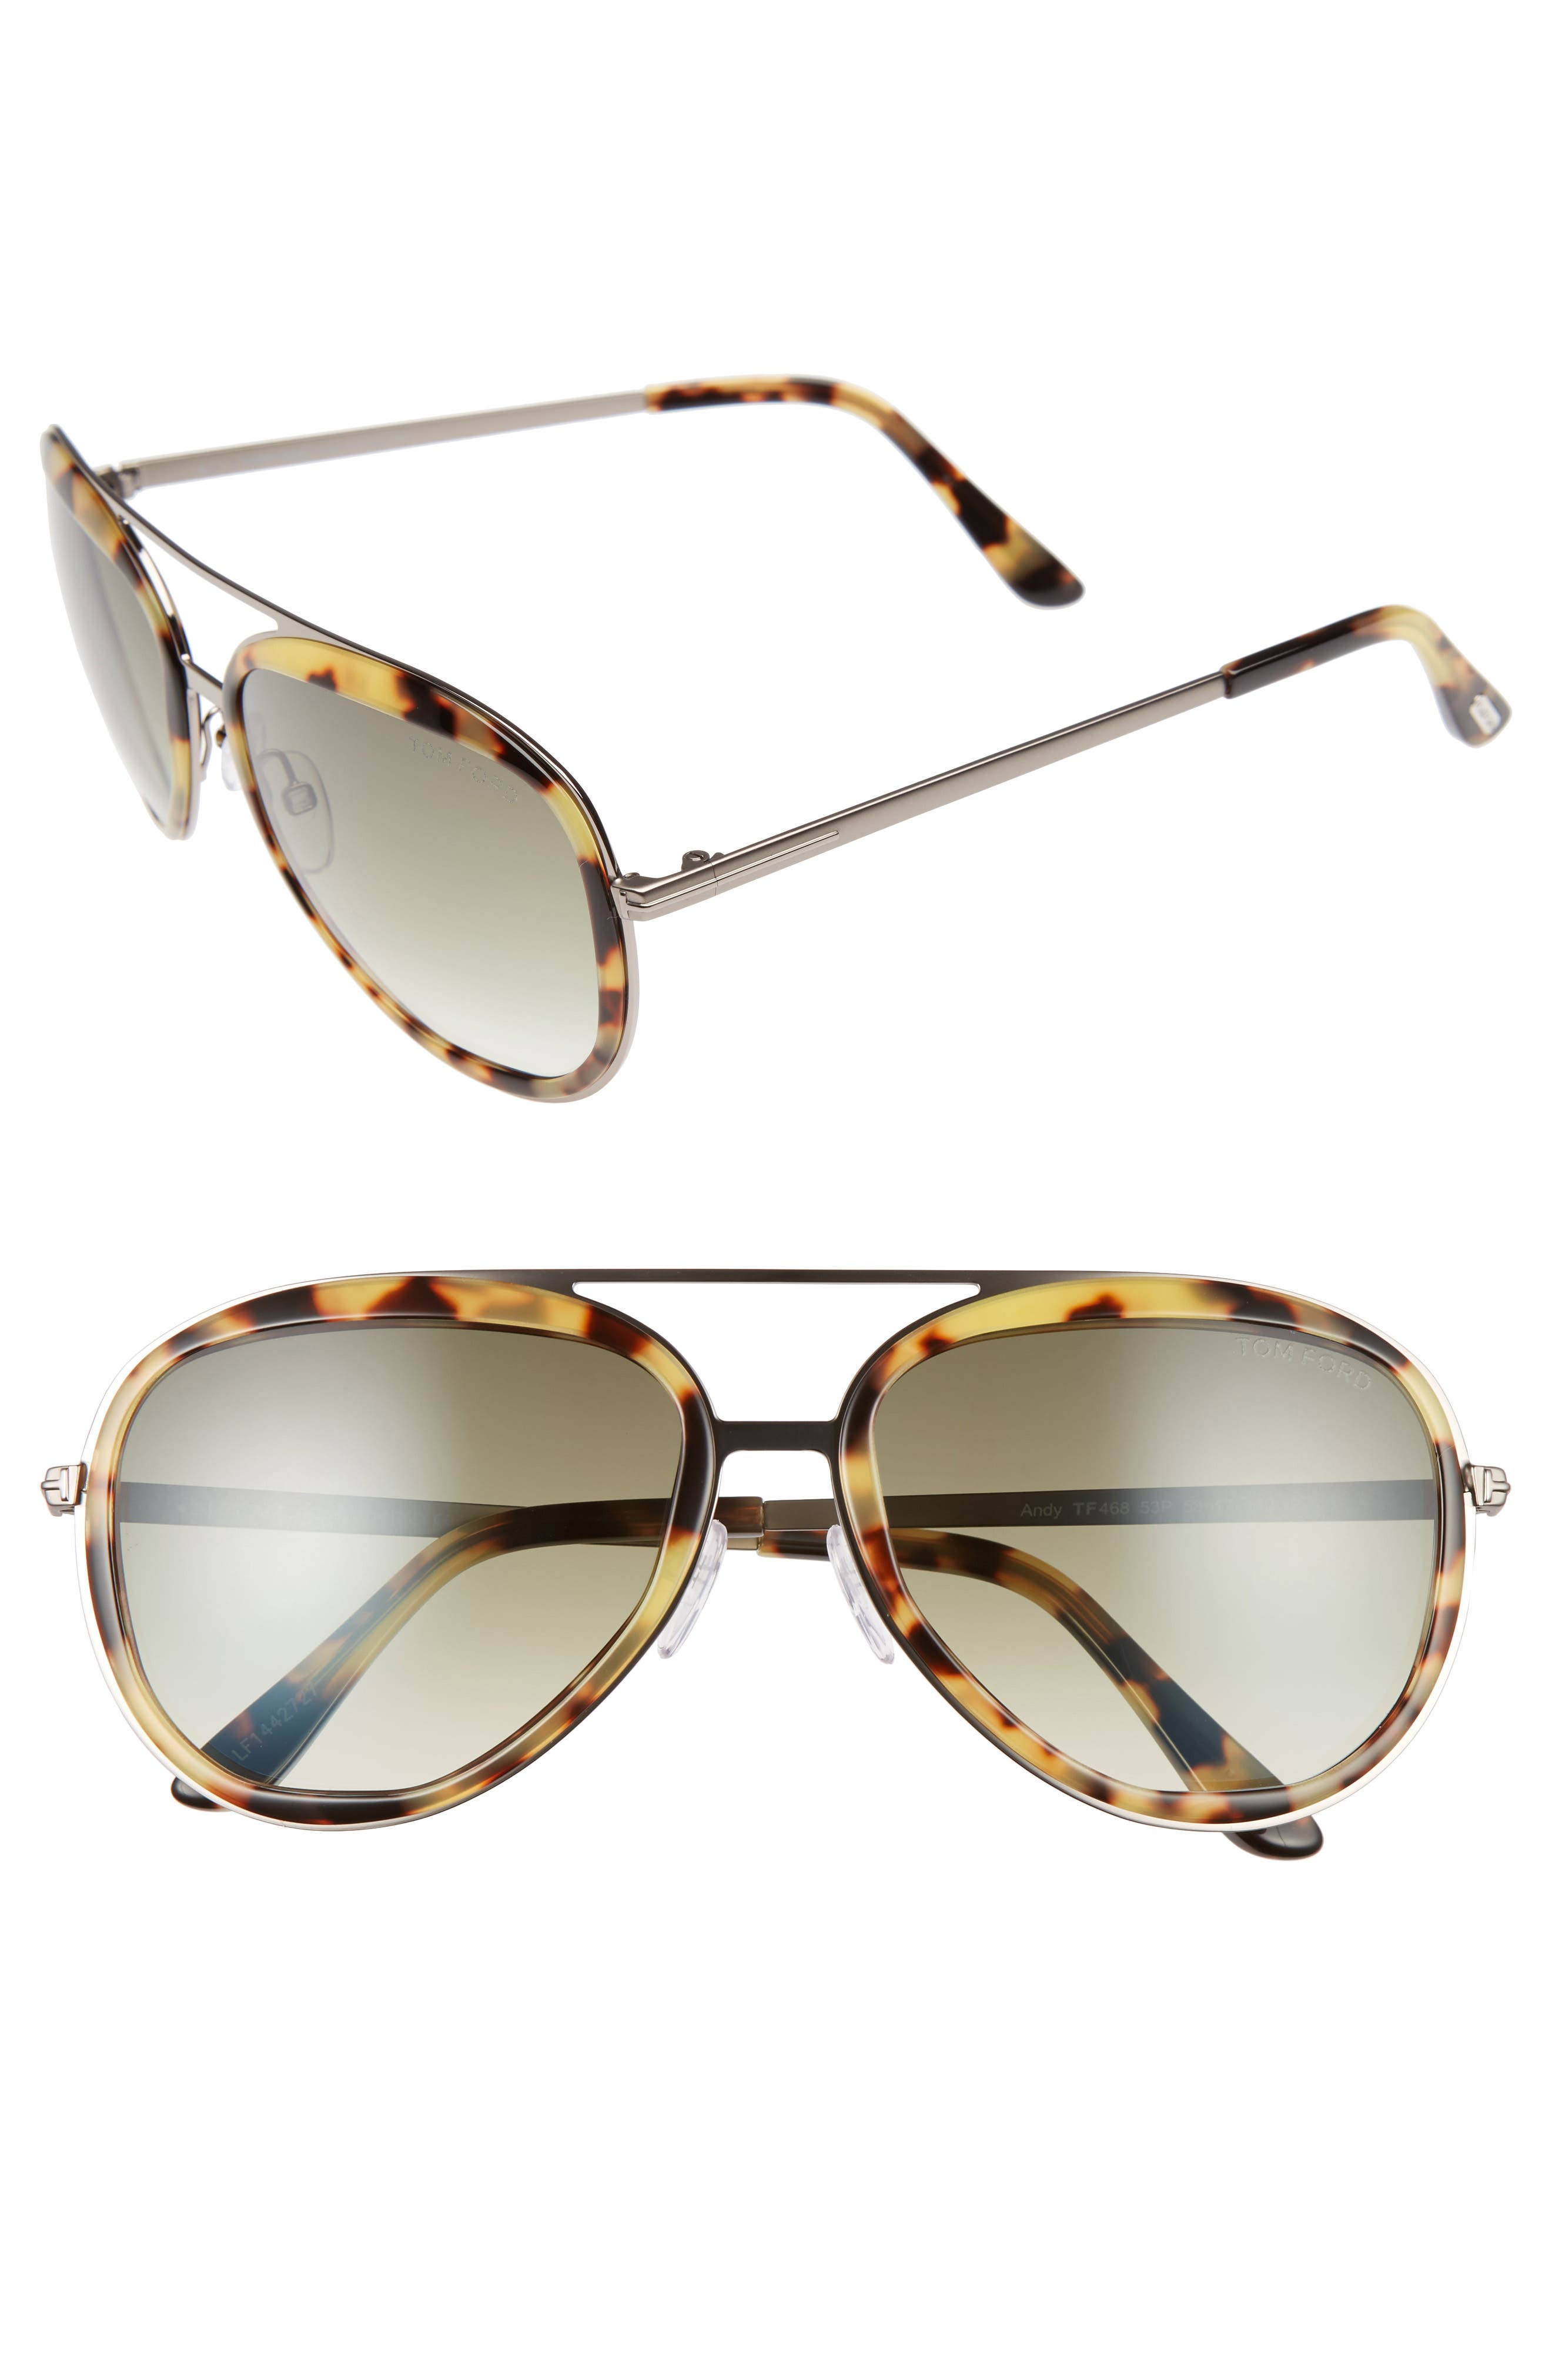 Andy 58mm Aviator Sunglasses,                         Main,                         color, 020